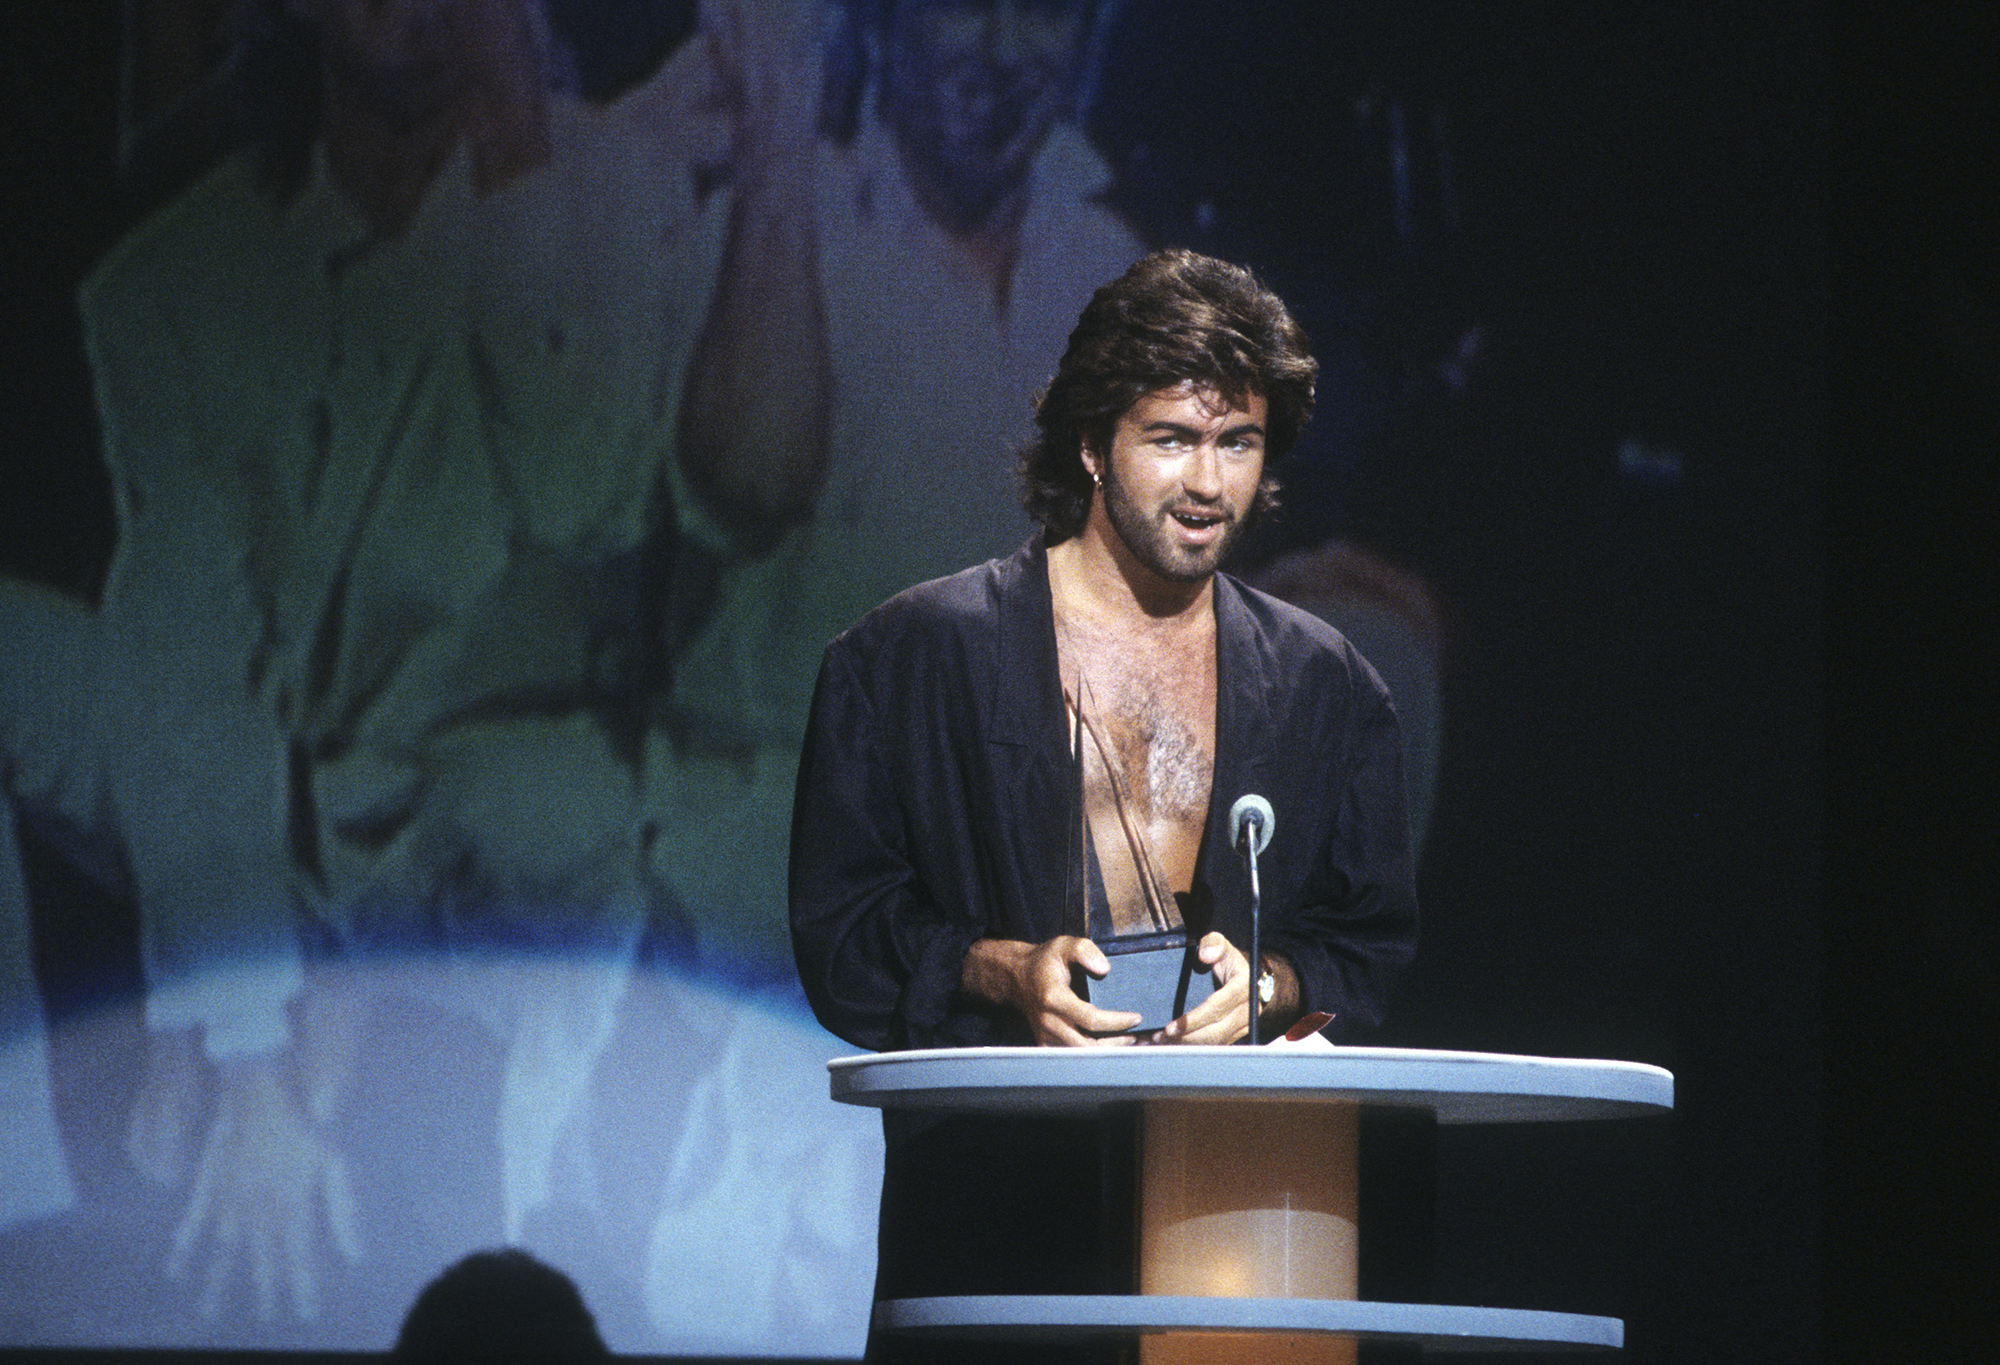 George Michael at the American Music Awards, on Jan. 27, 1986.